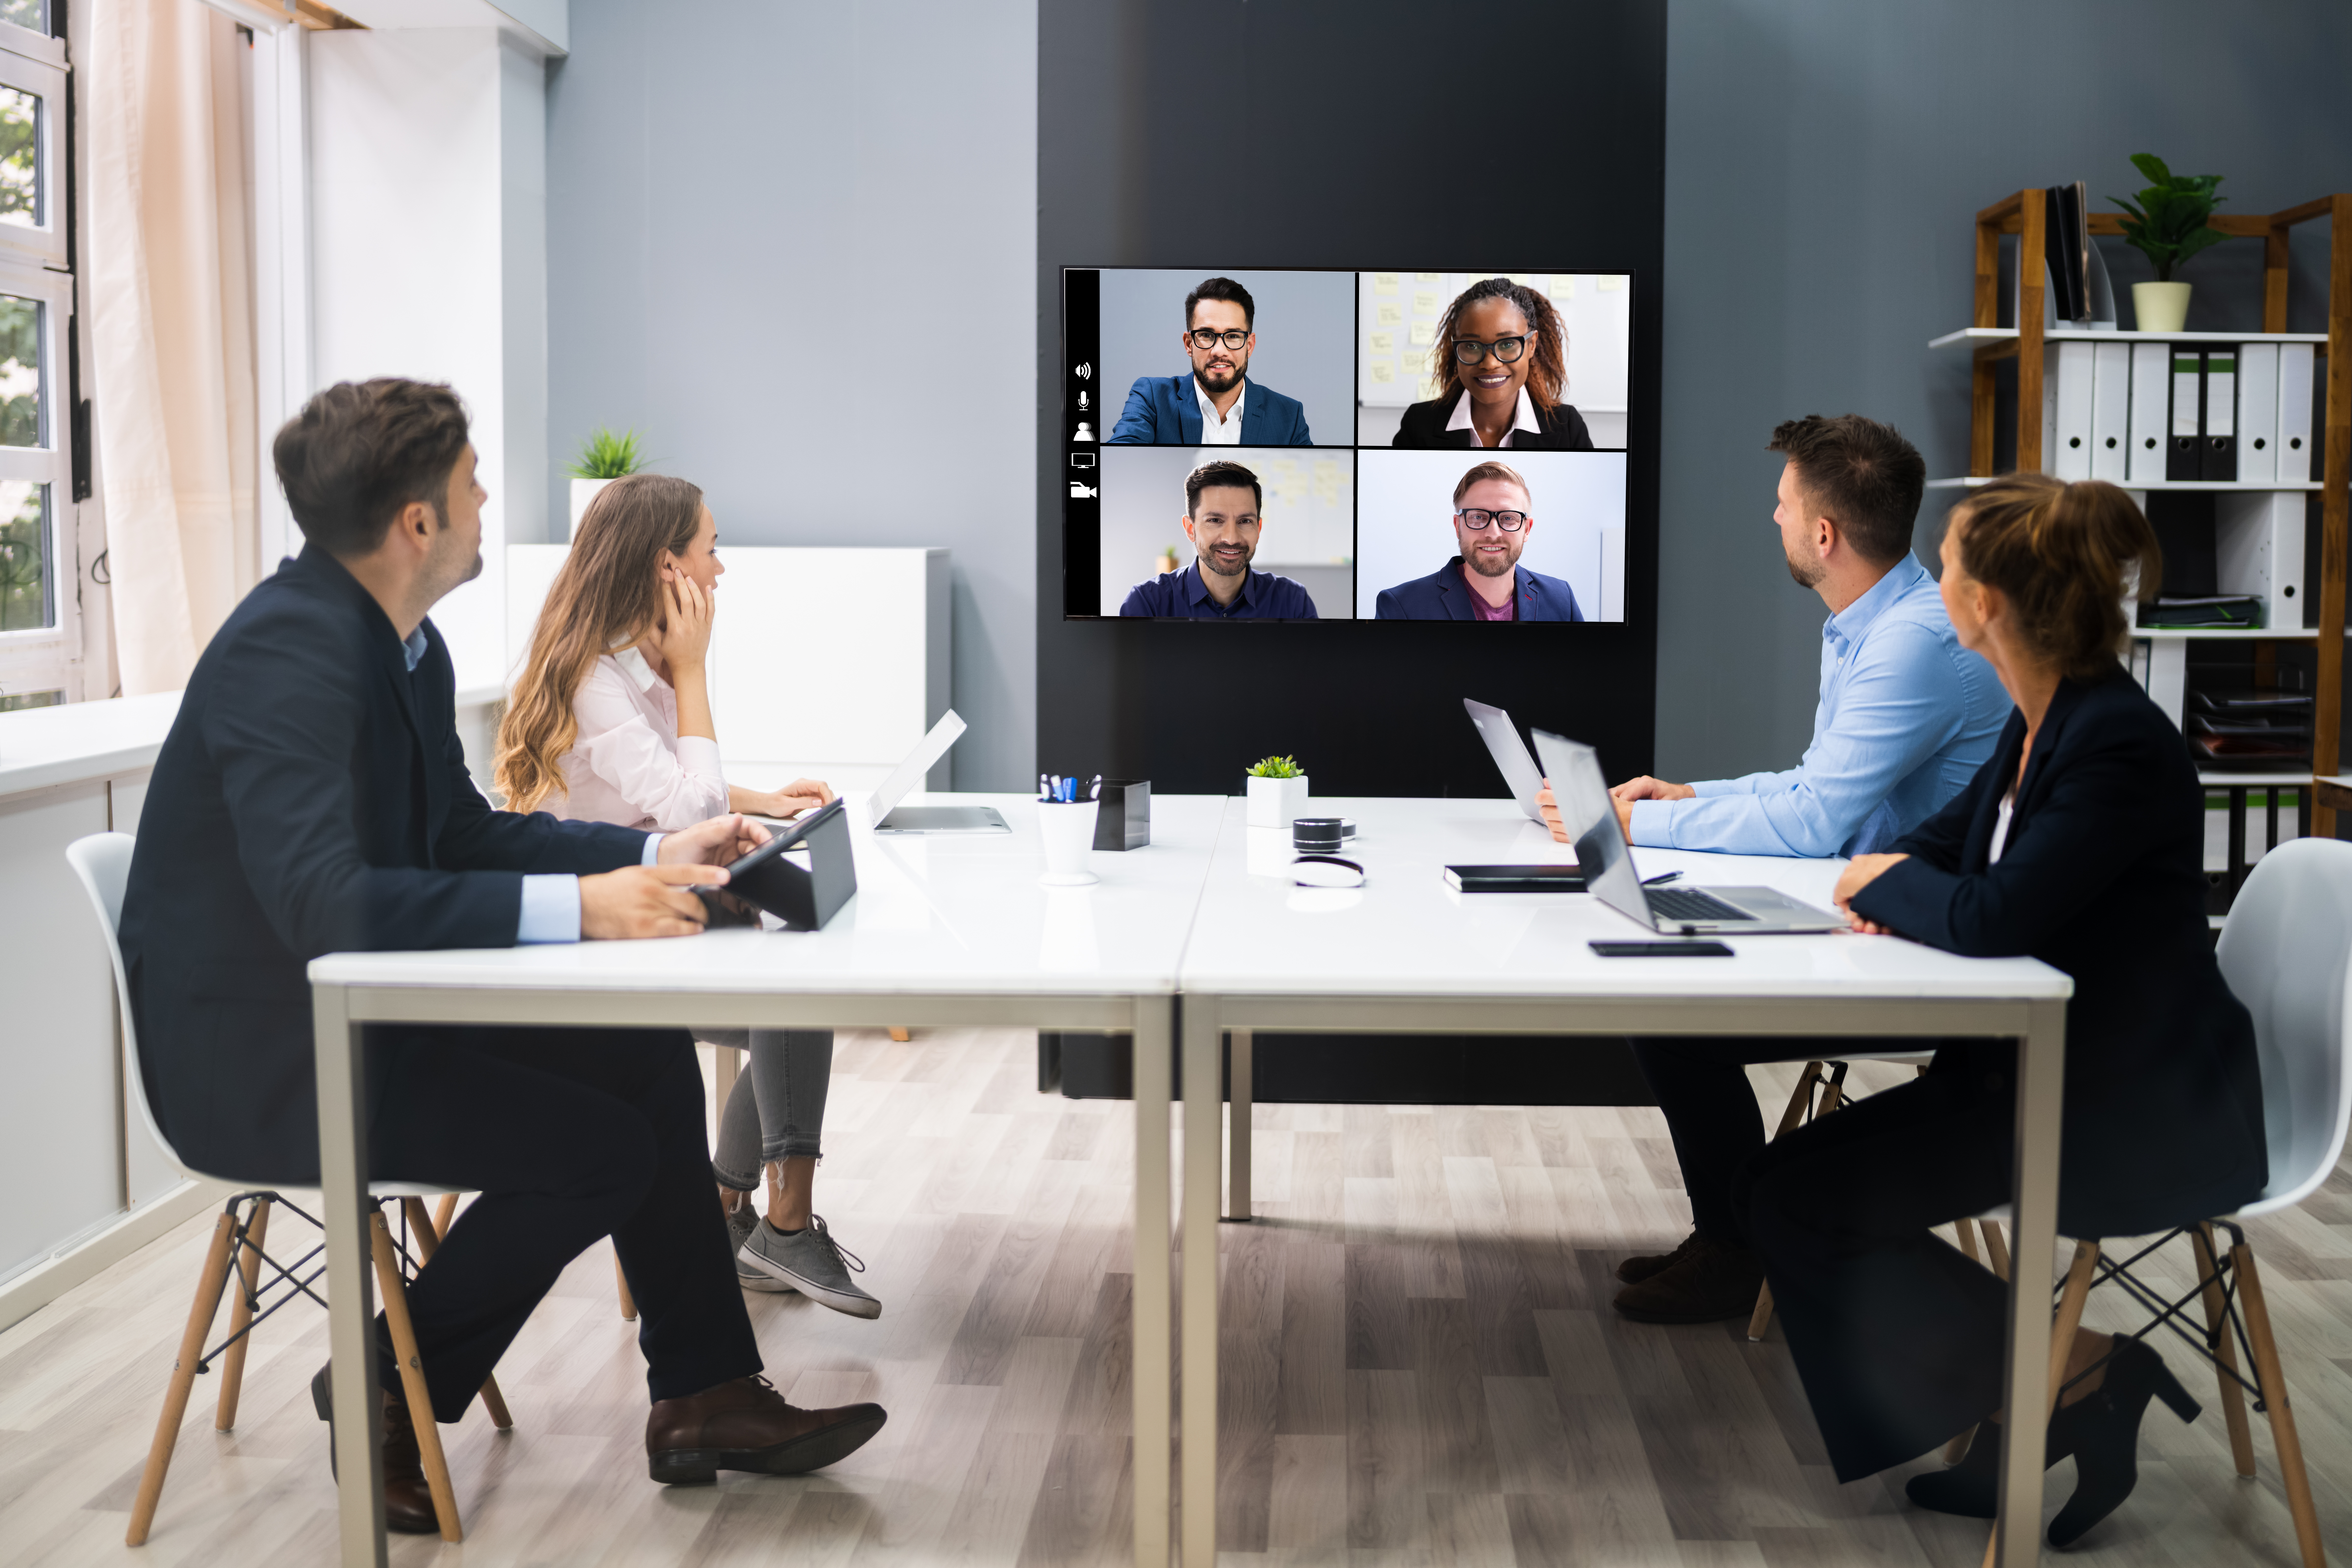 Bring Your Own Meeting with ScreenBeam Conference